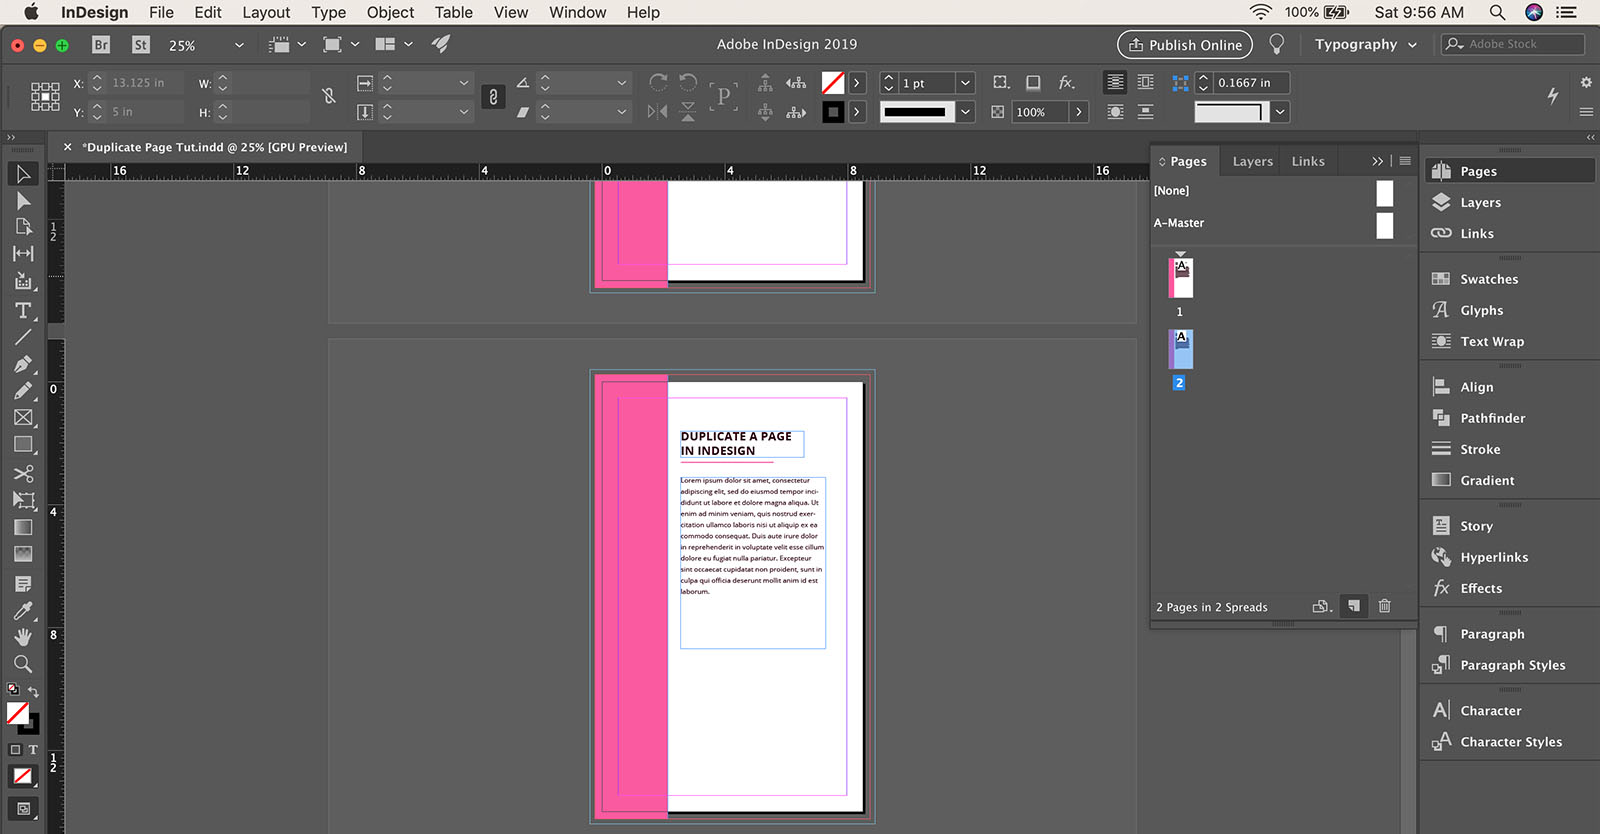 How to duplicate a page in InDesign